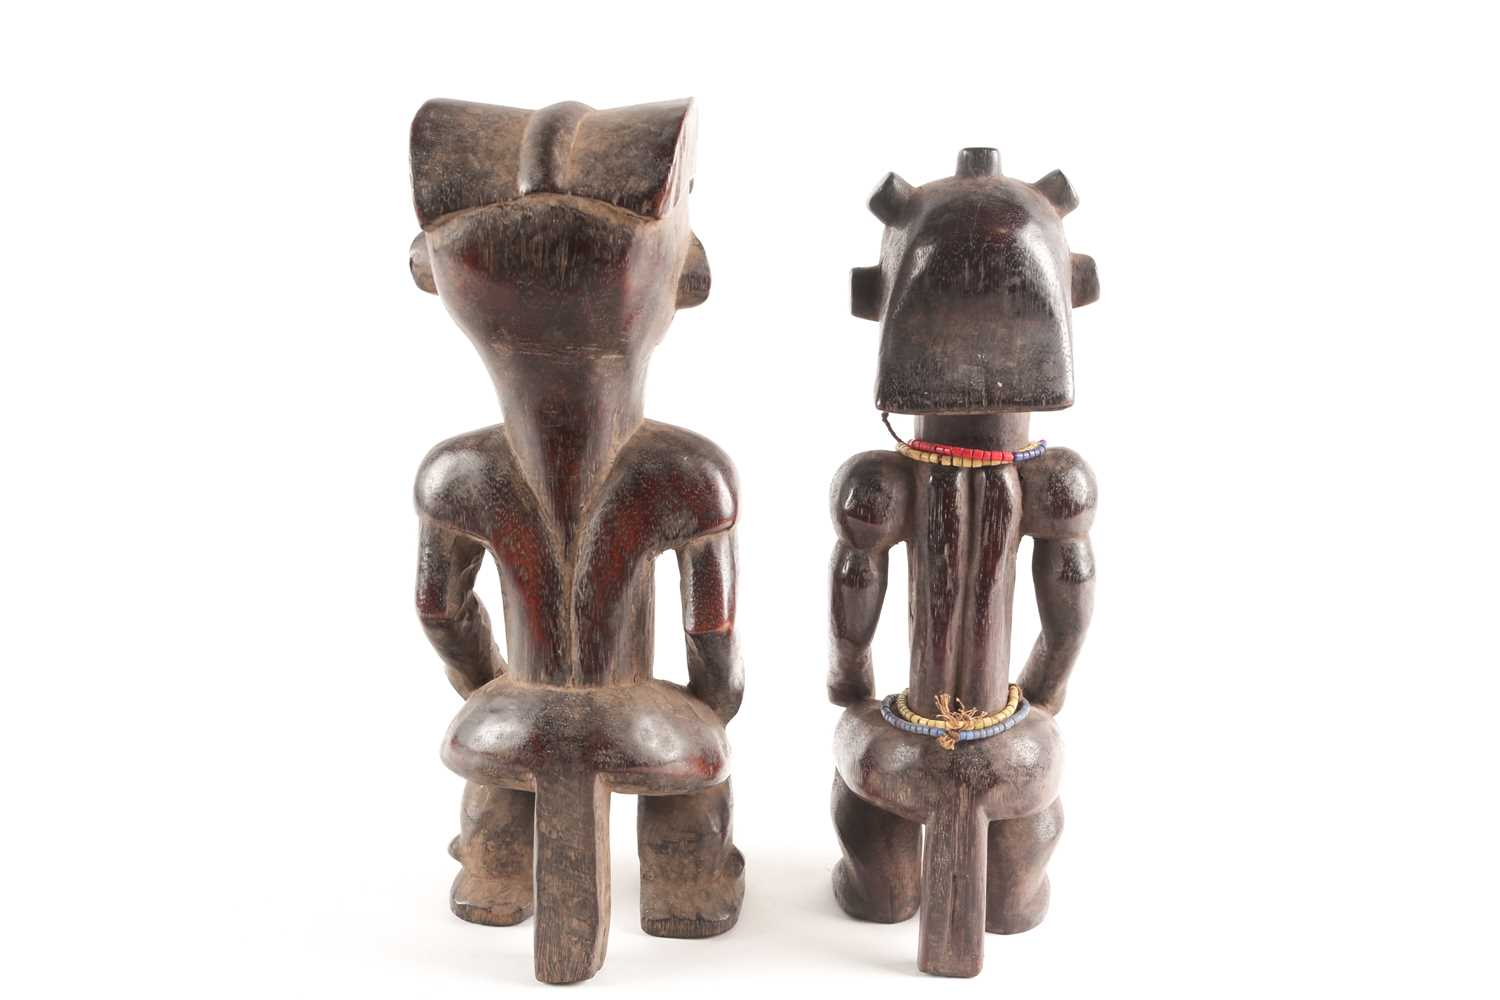 A Fang seated male figure, Gabon, with knotted hair swept out at the rear, seated with his hands - Image 5 of 6